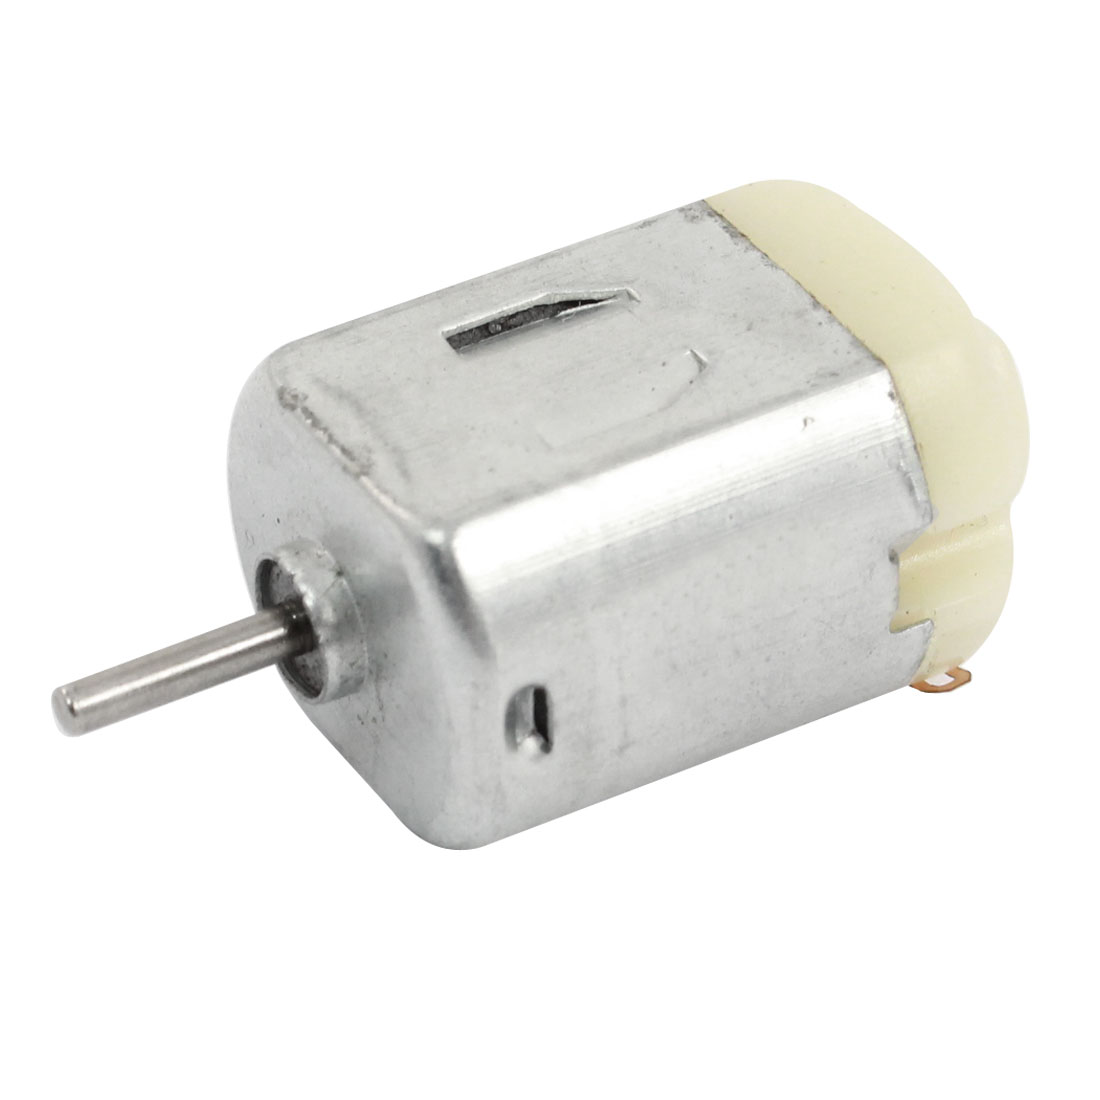 18000 RPM DC 1.5-3V High Torque Cylinder Magnetic Electric Mini Motor